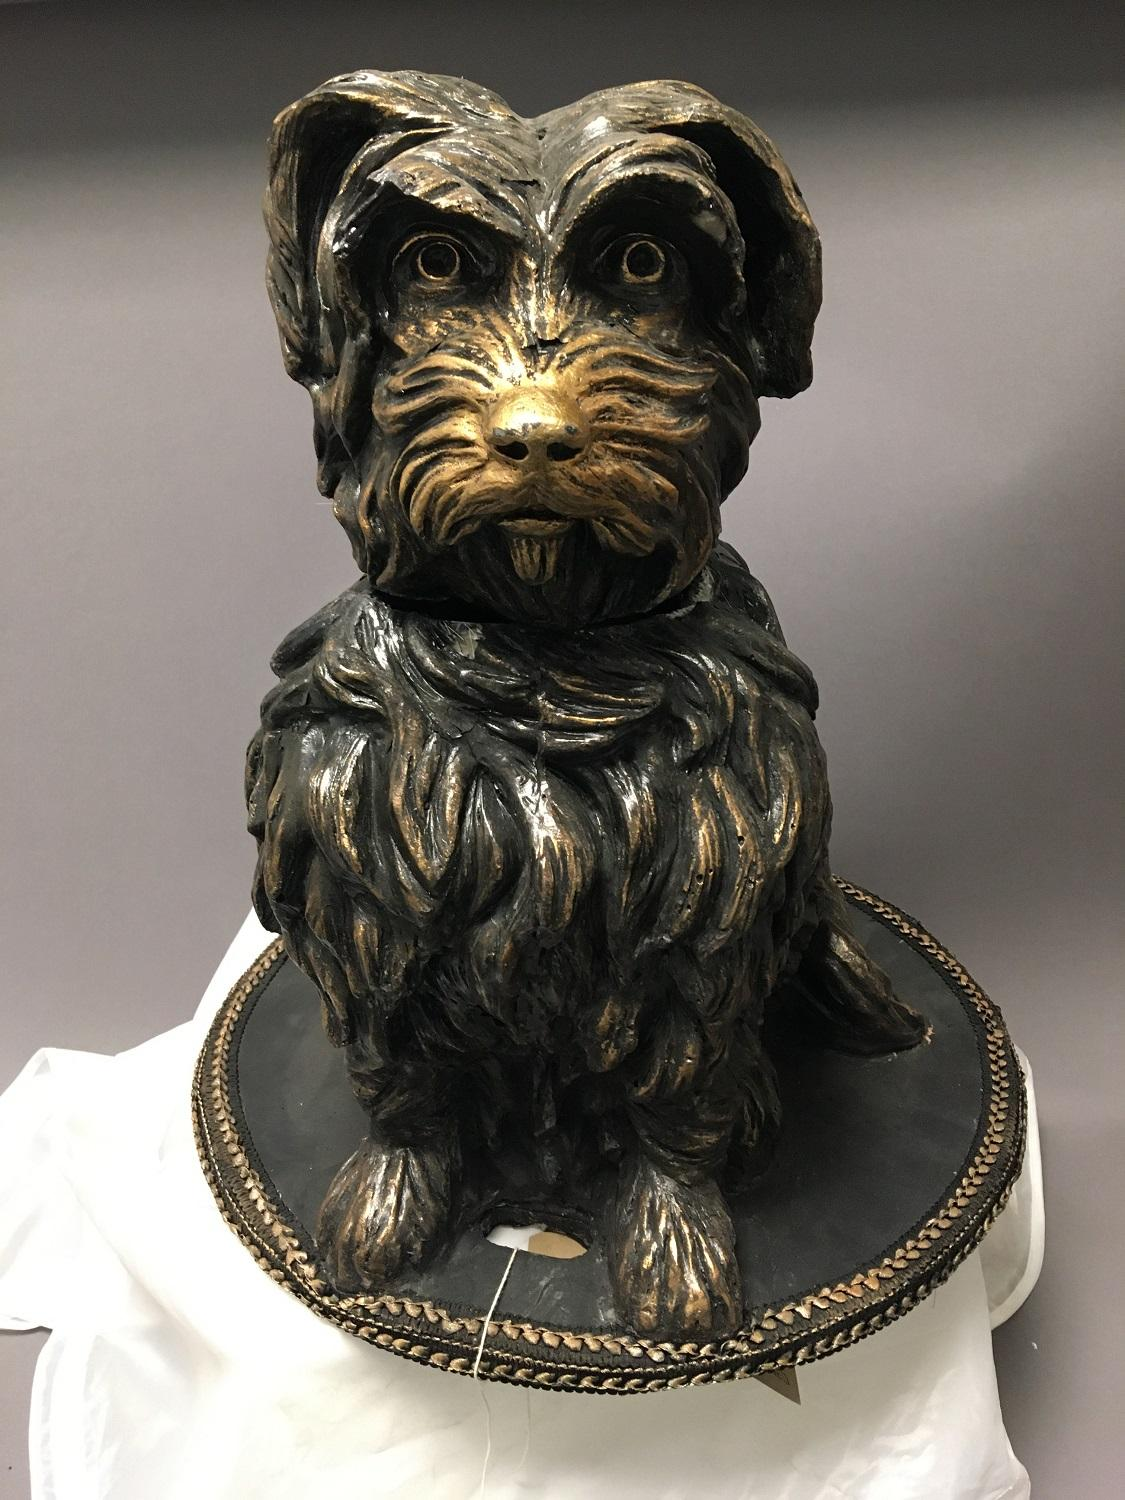 Fibreglass model of Grayfriars Bobby used at the 2014 Commonwealth Games, front view